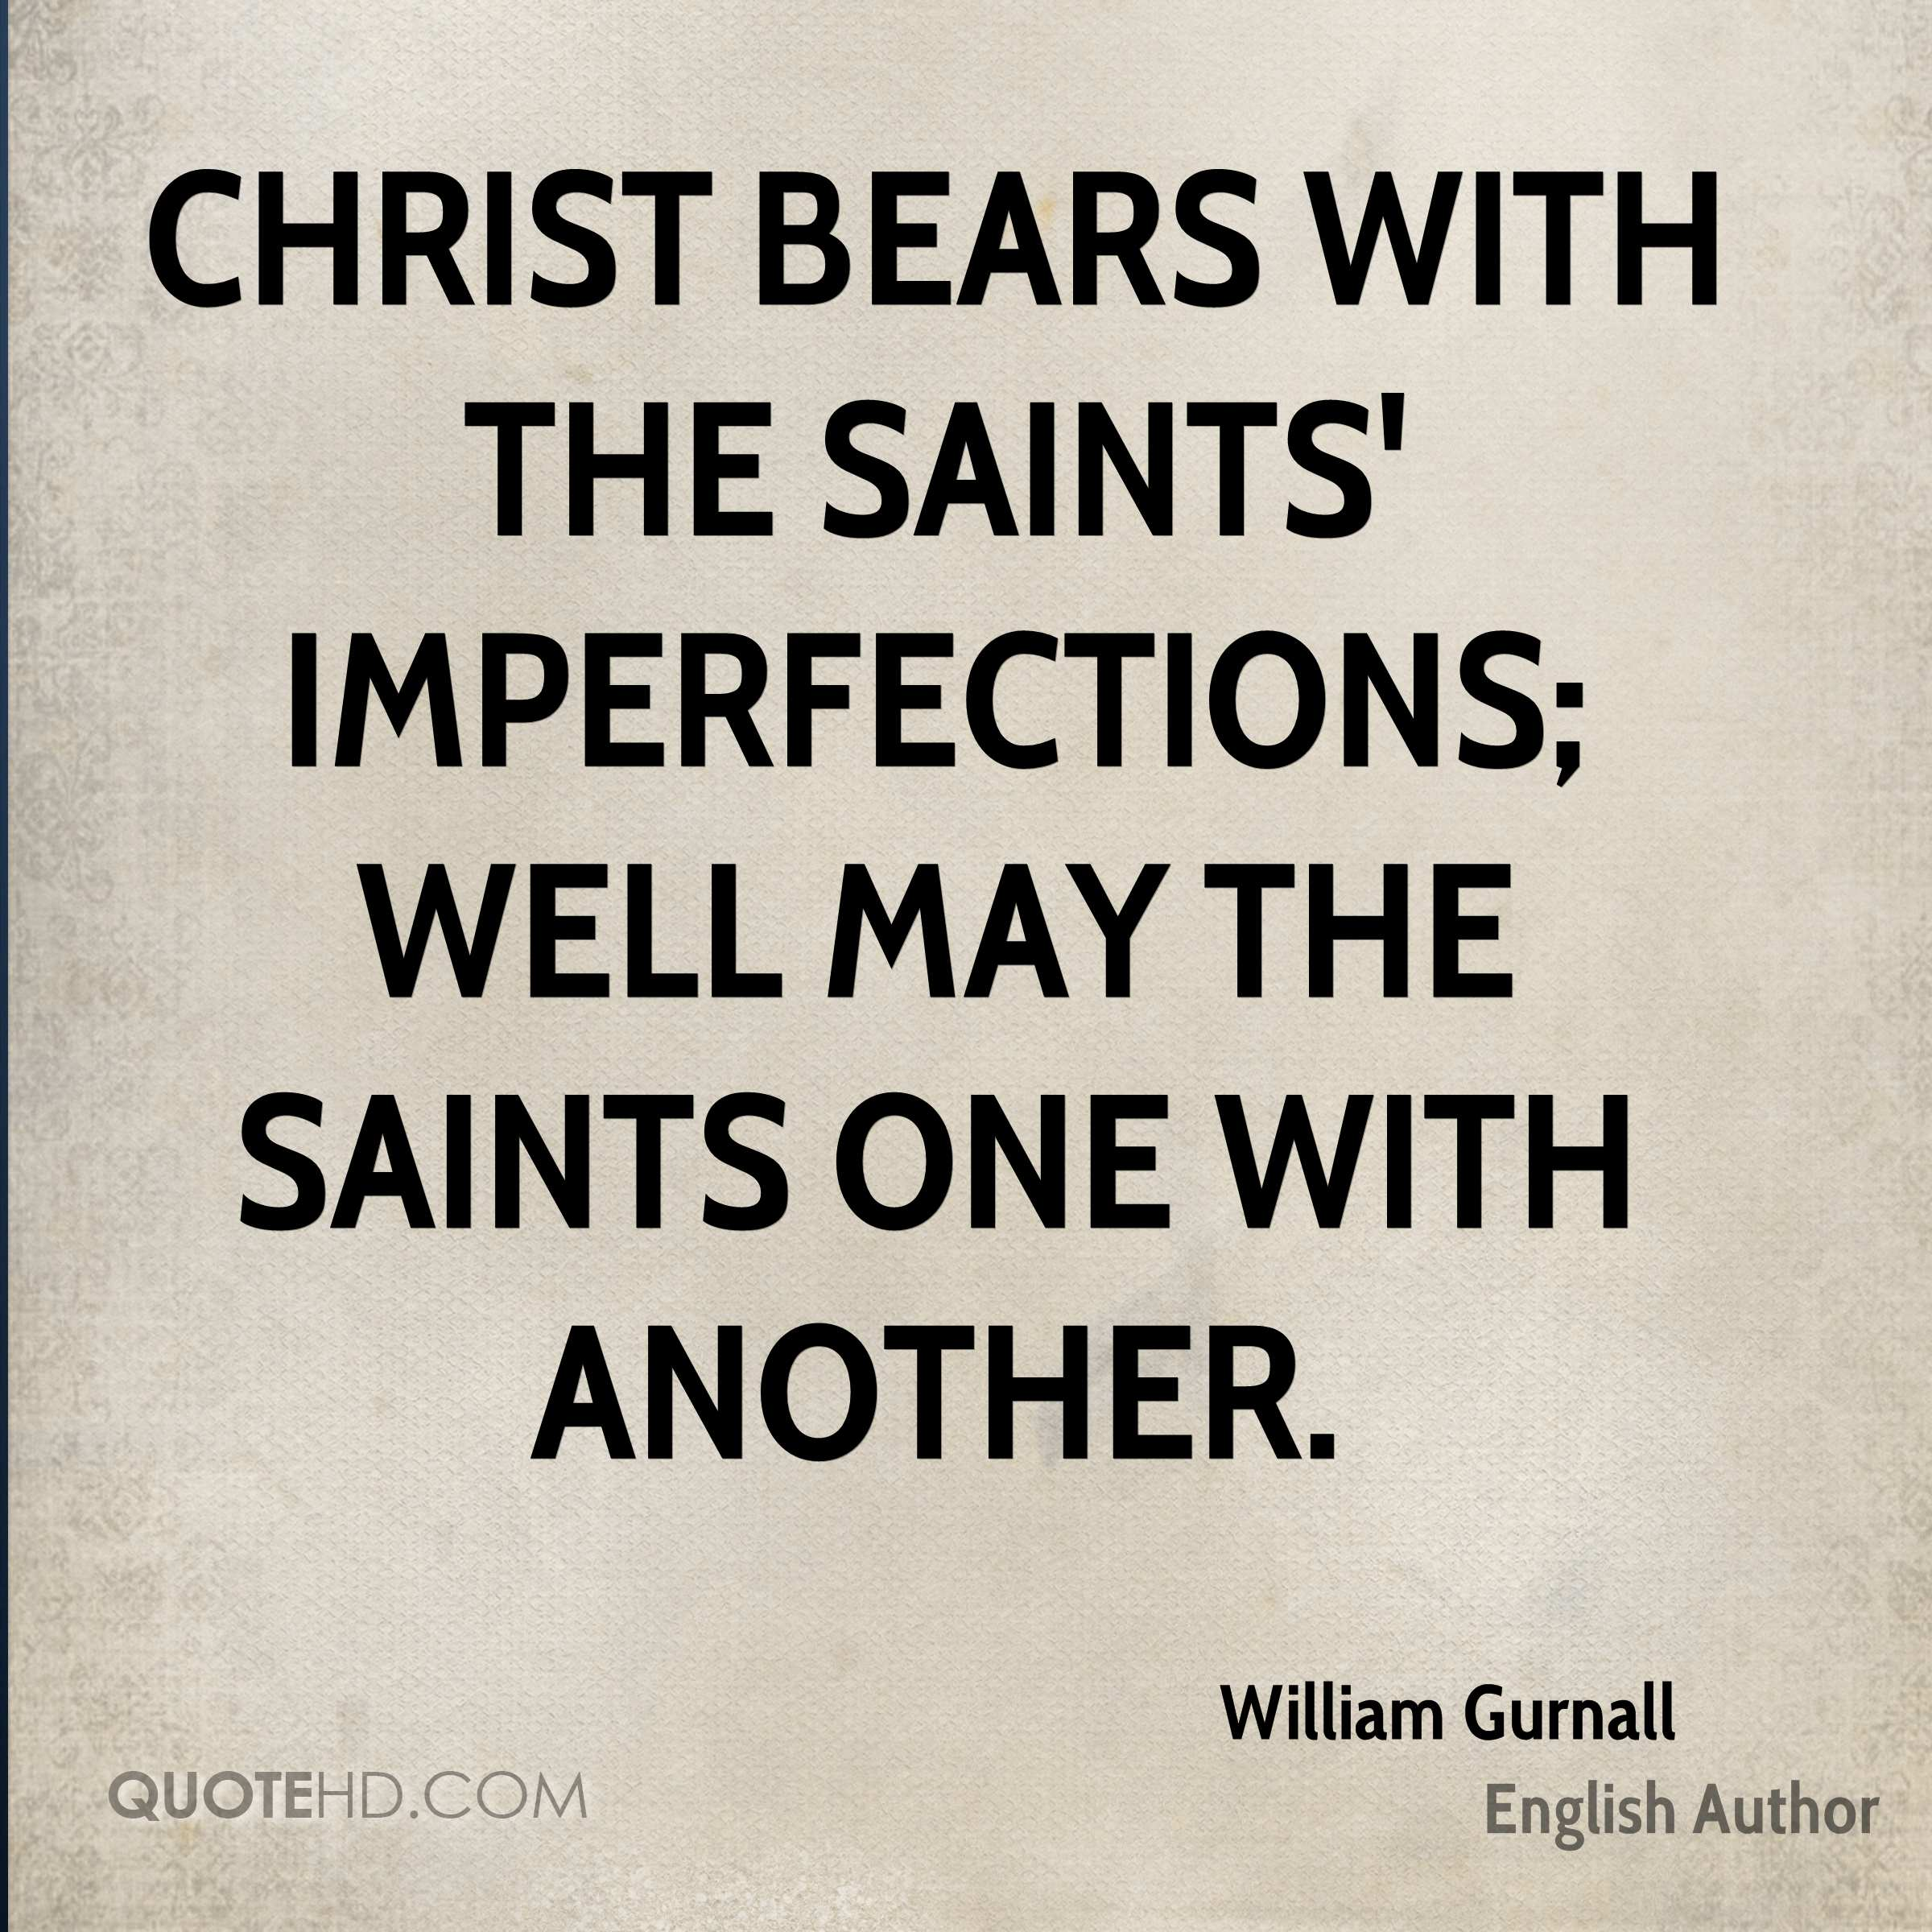 Christ bears with the saints' imperfections; well may the saints one with another.